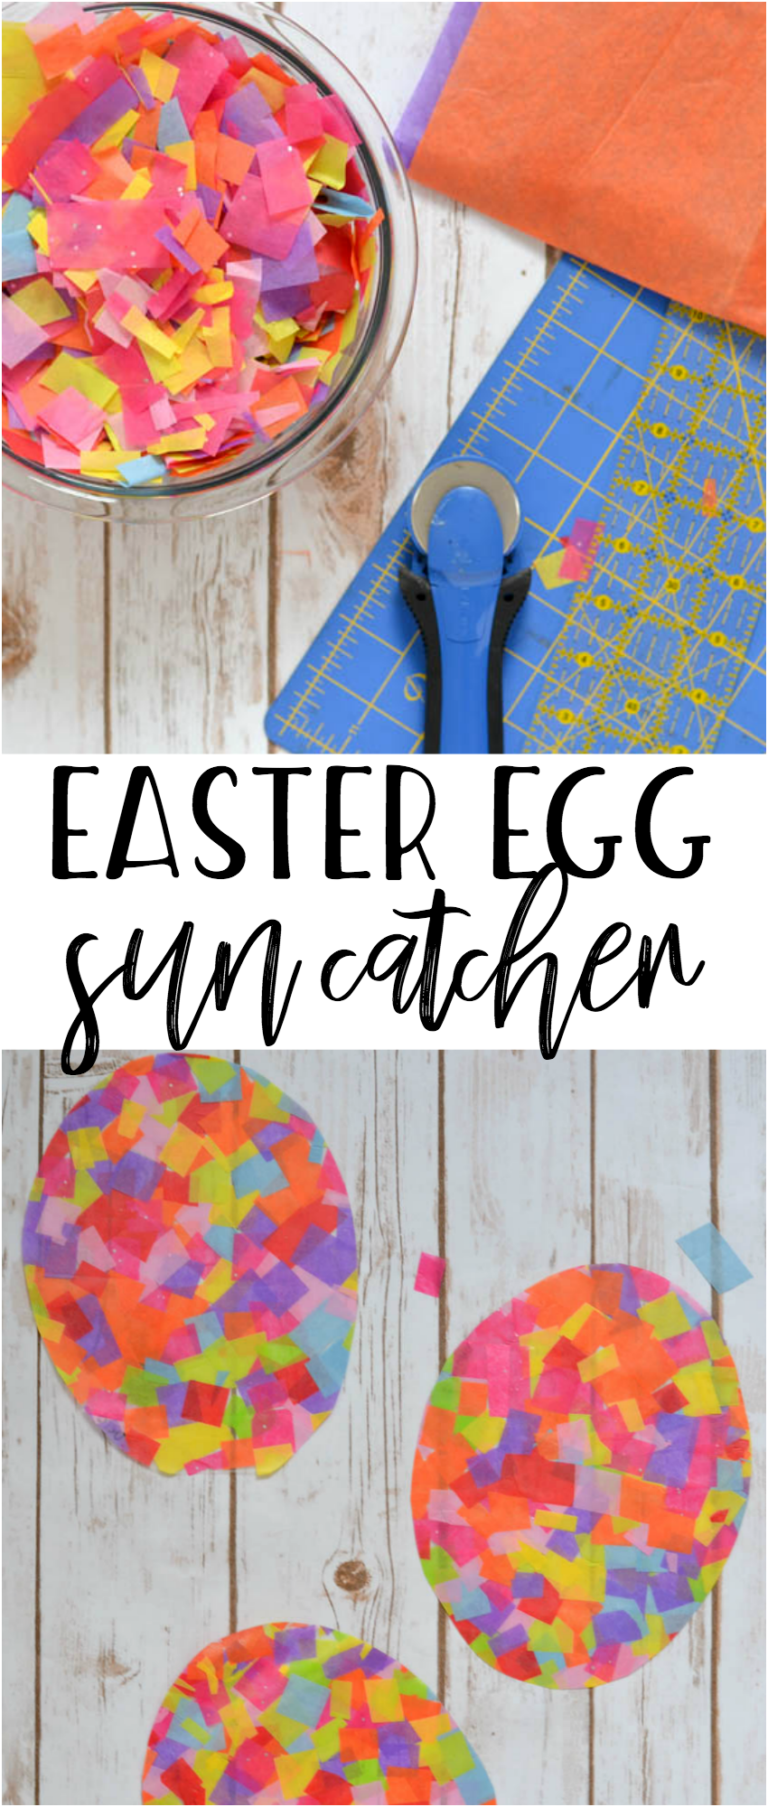 A Fun And Easy Craft For All Ages Tissue Paper Easter Egg Sun